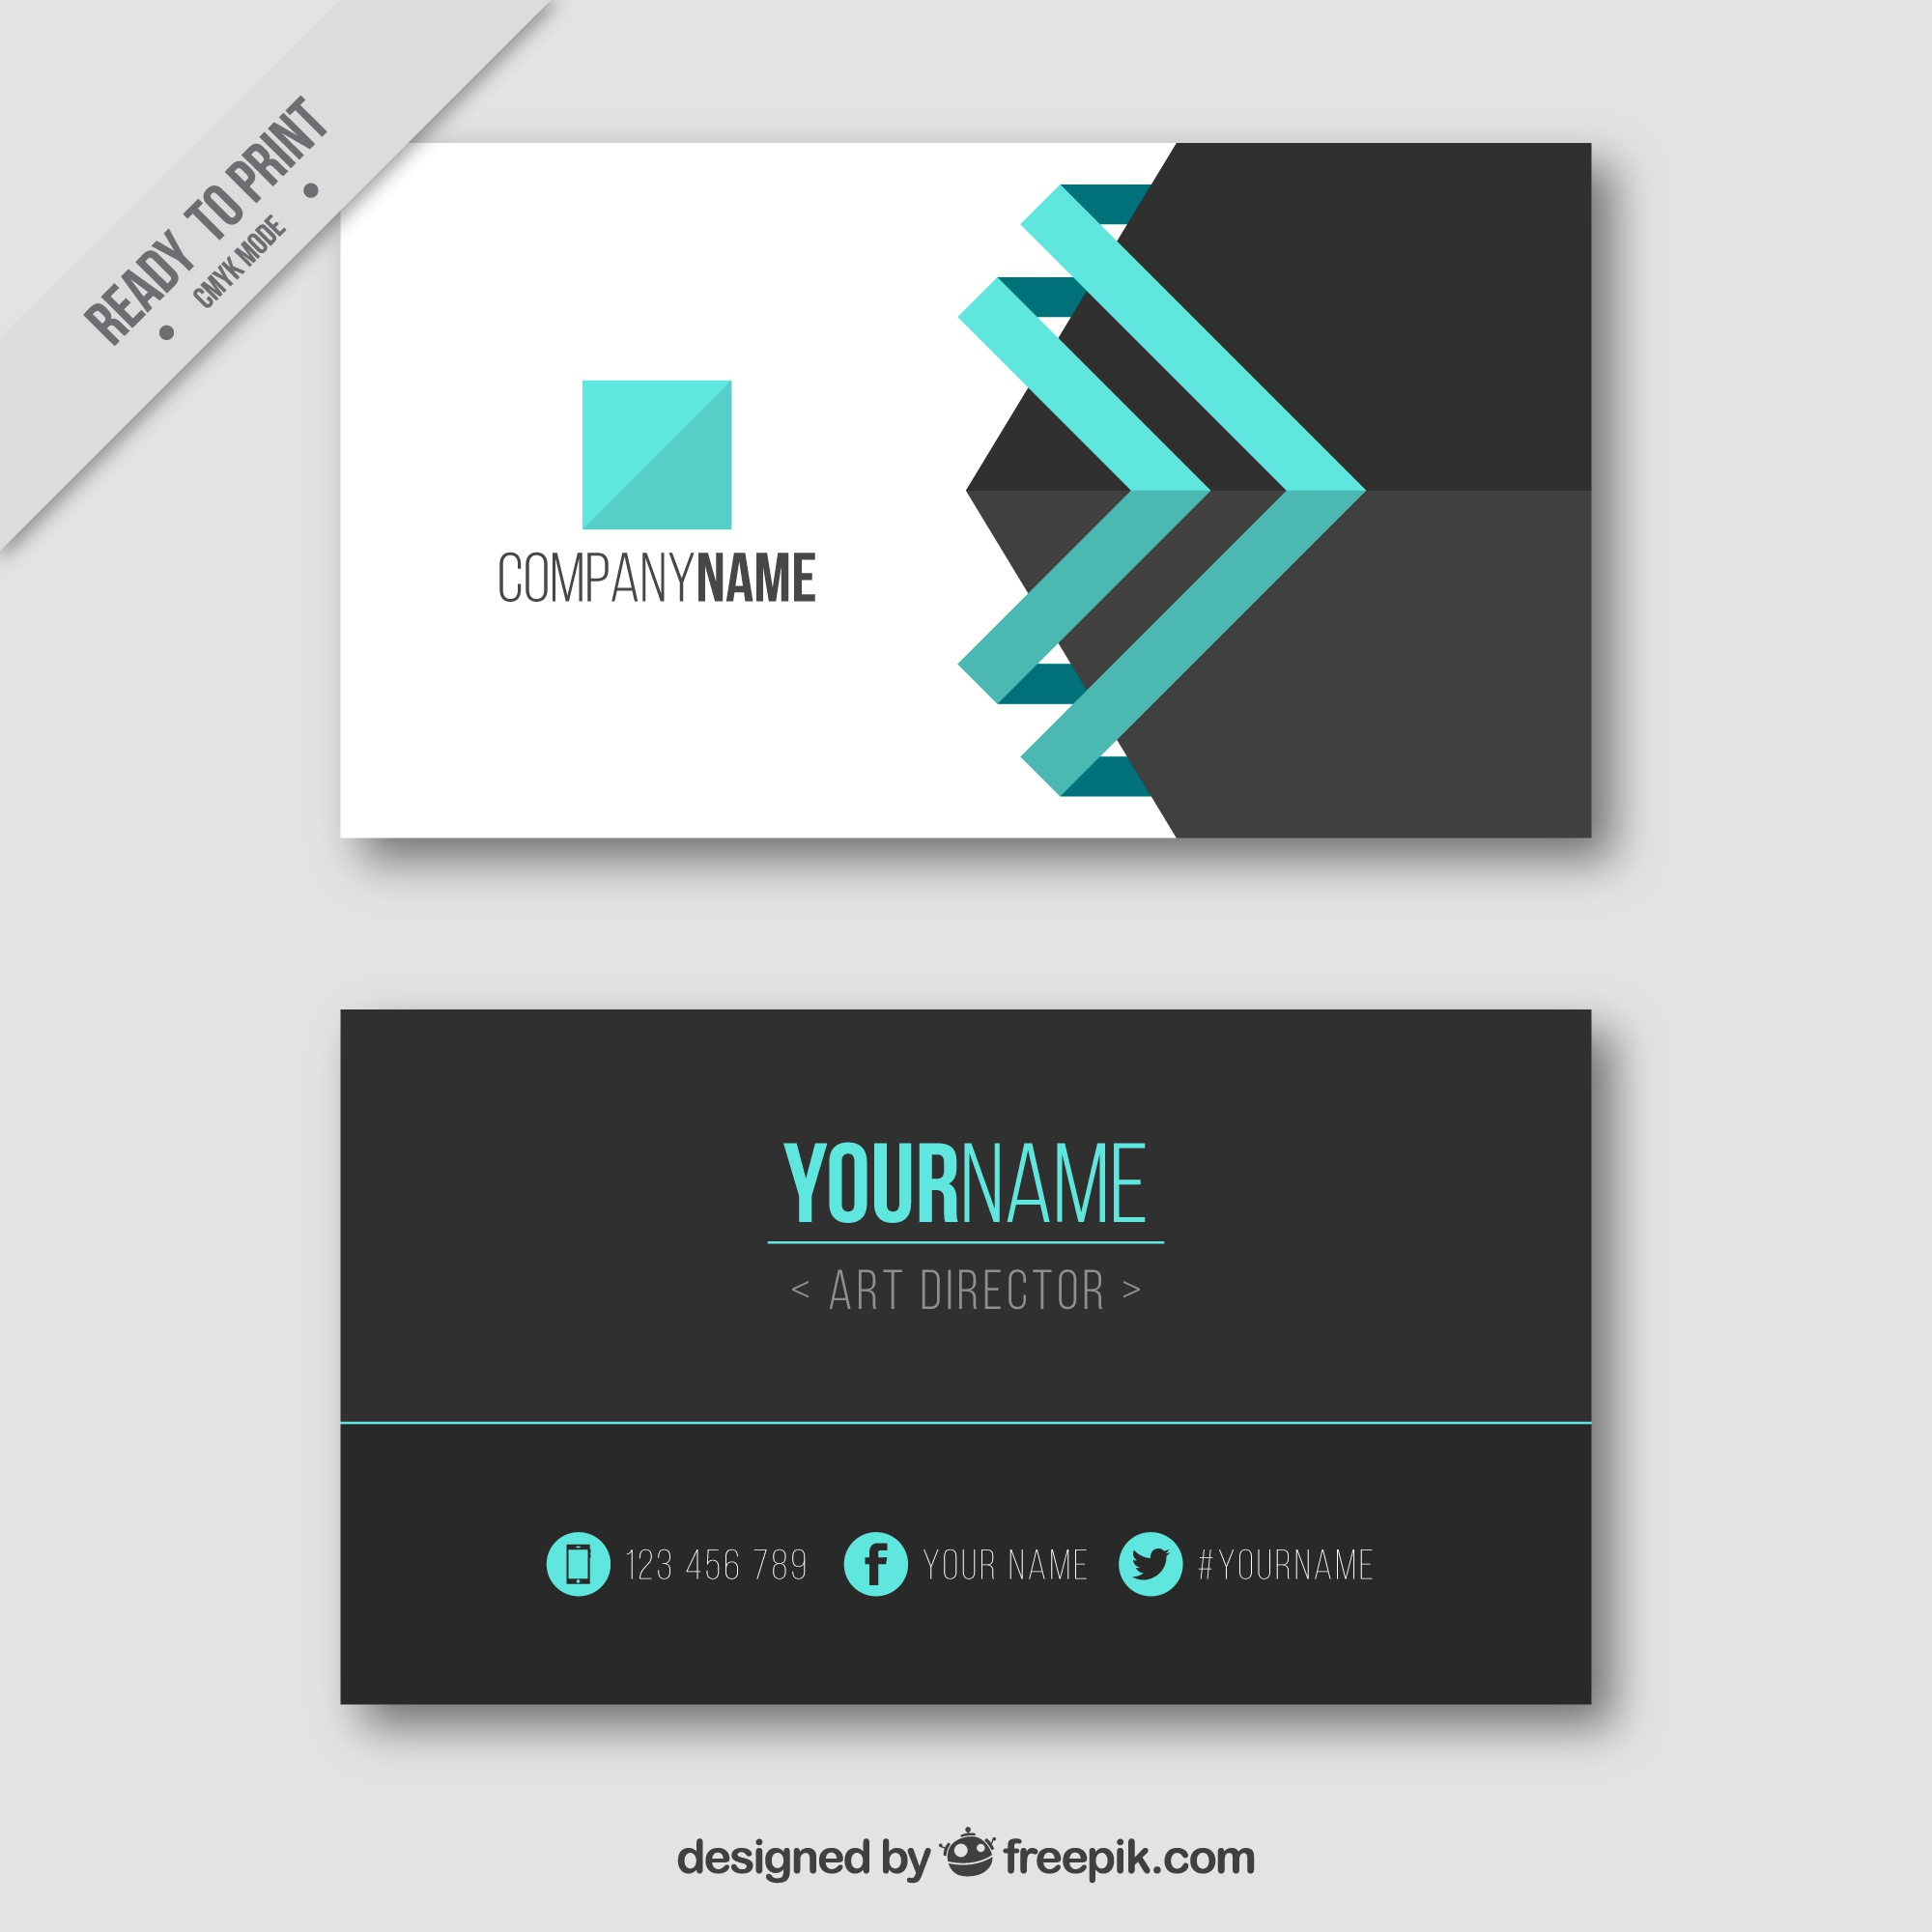 Visiting card with blue details